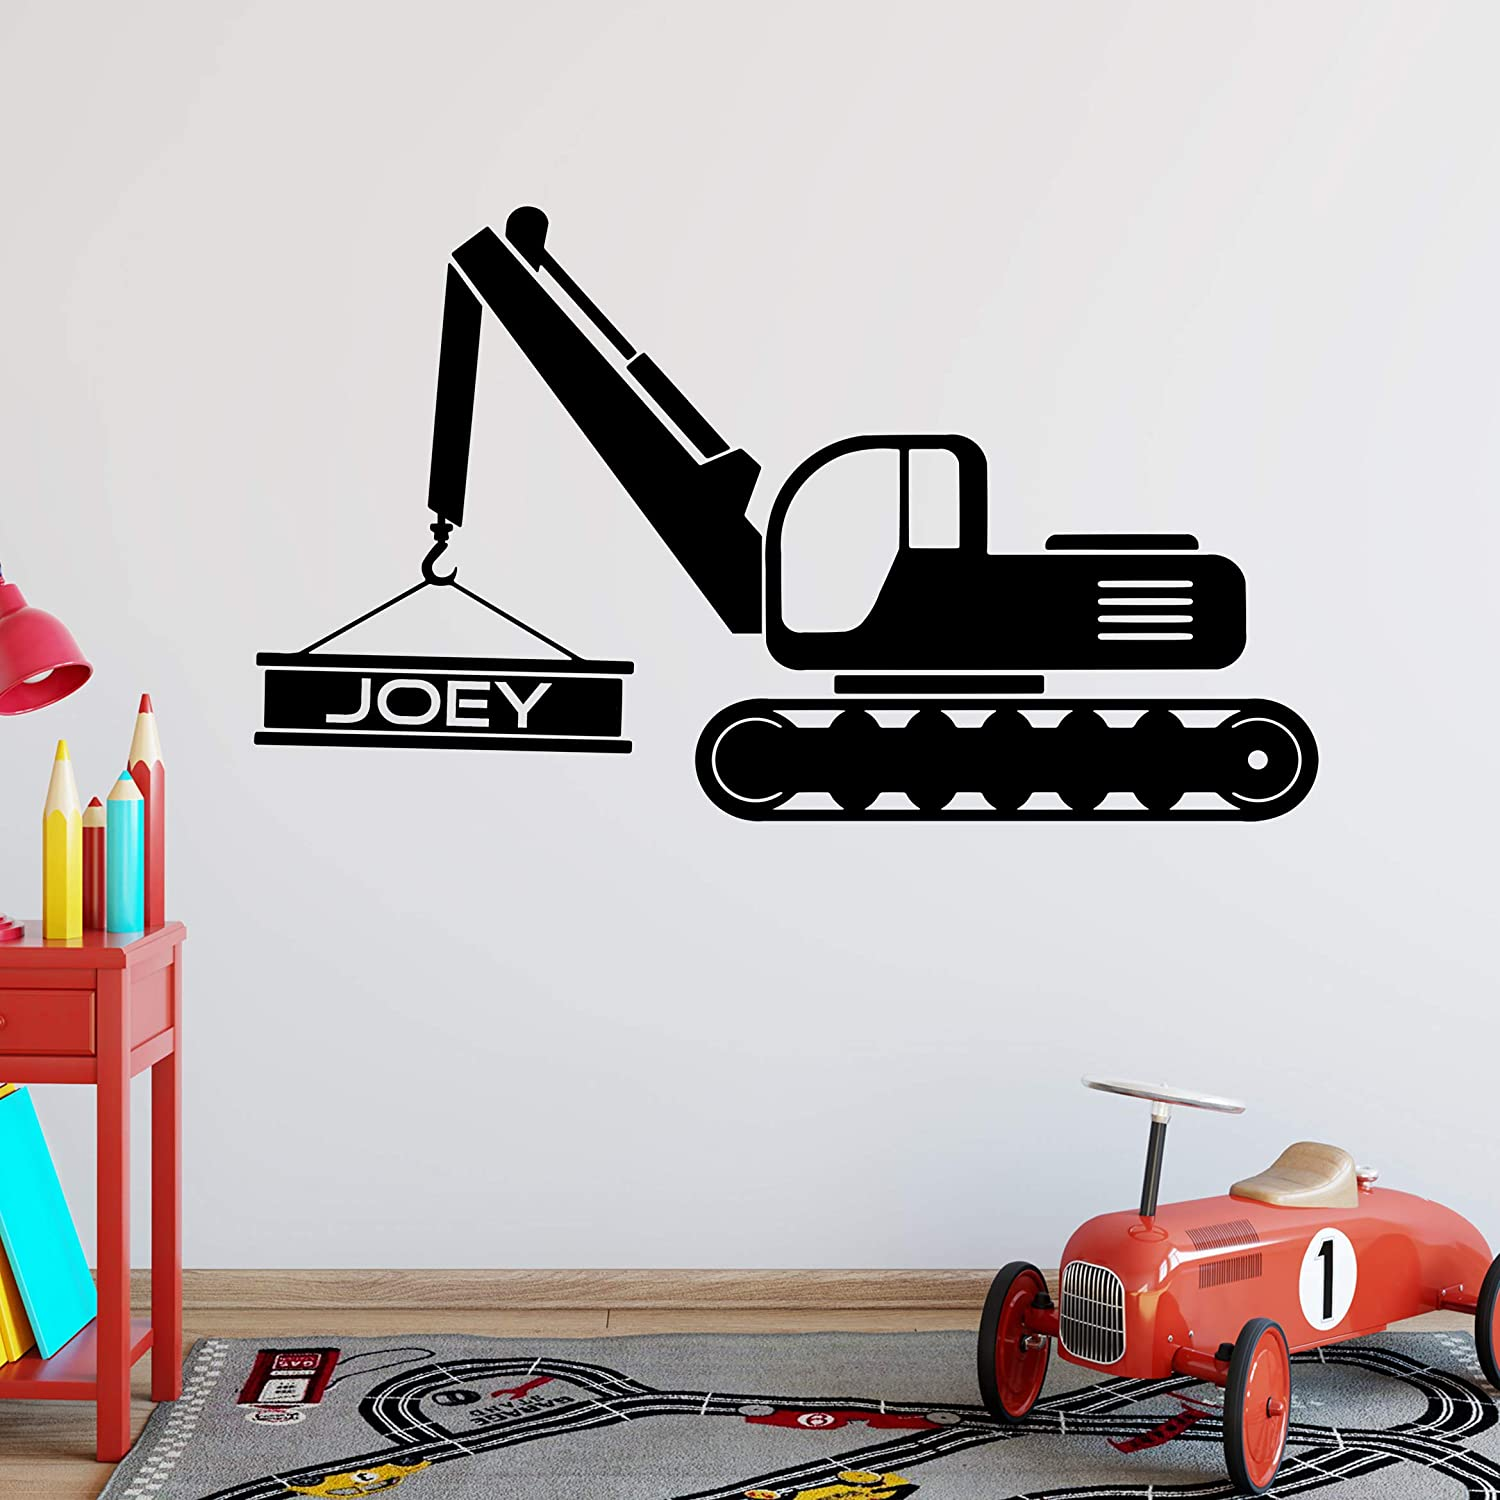 VWAQ Personalized Excavator Wall Decal Customized Boys Name Construction Truck Sticker Kids Room Decor - CS26